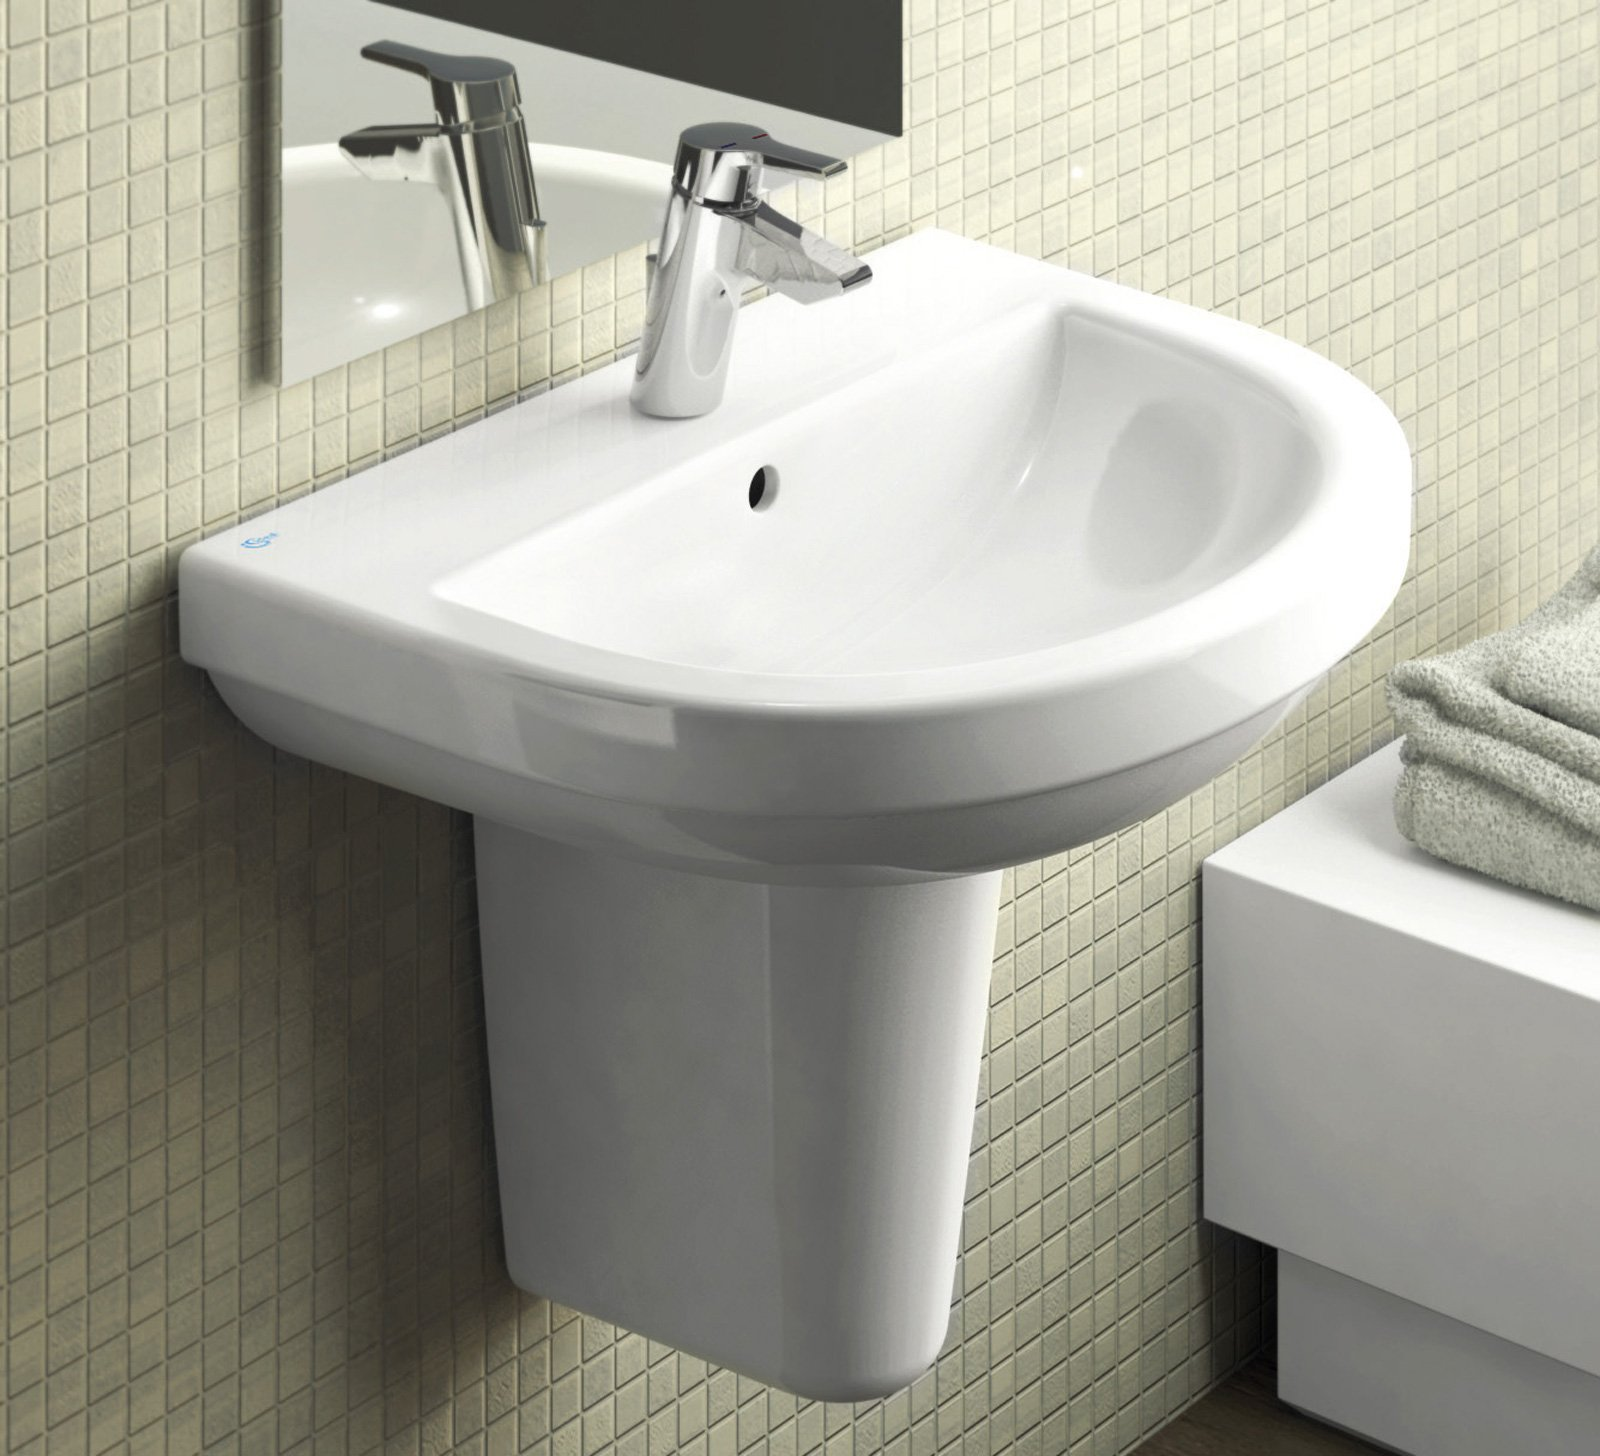 Sanitari bagno ideal standard idee creative e innovative for Sanitari bagno economici